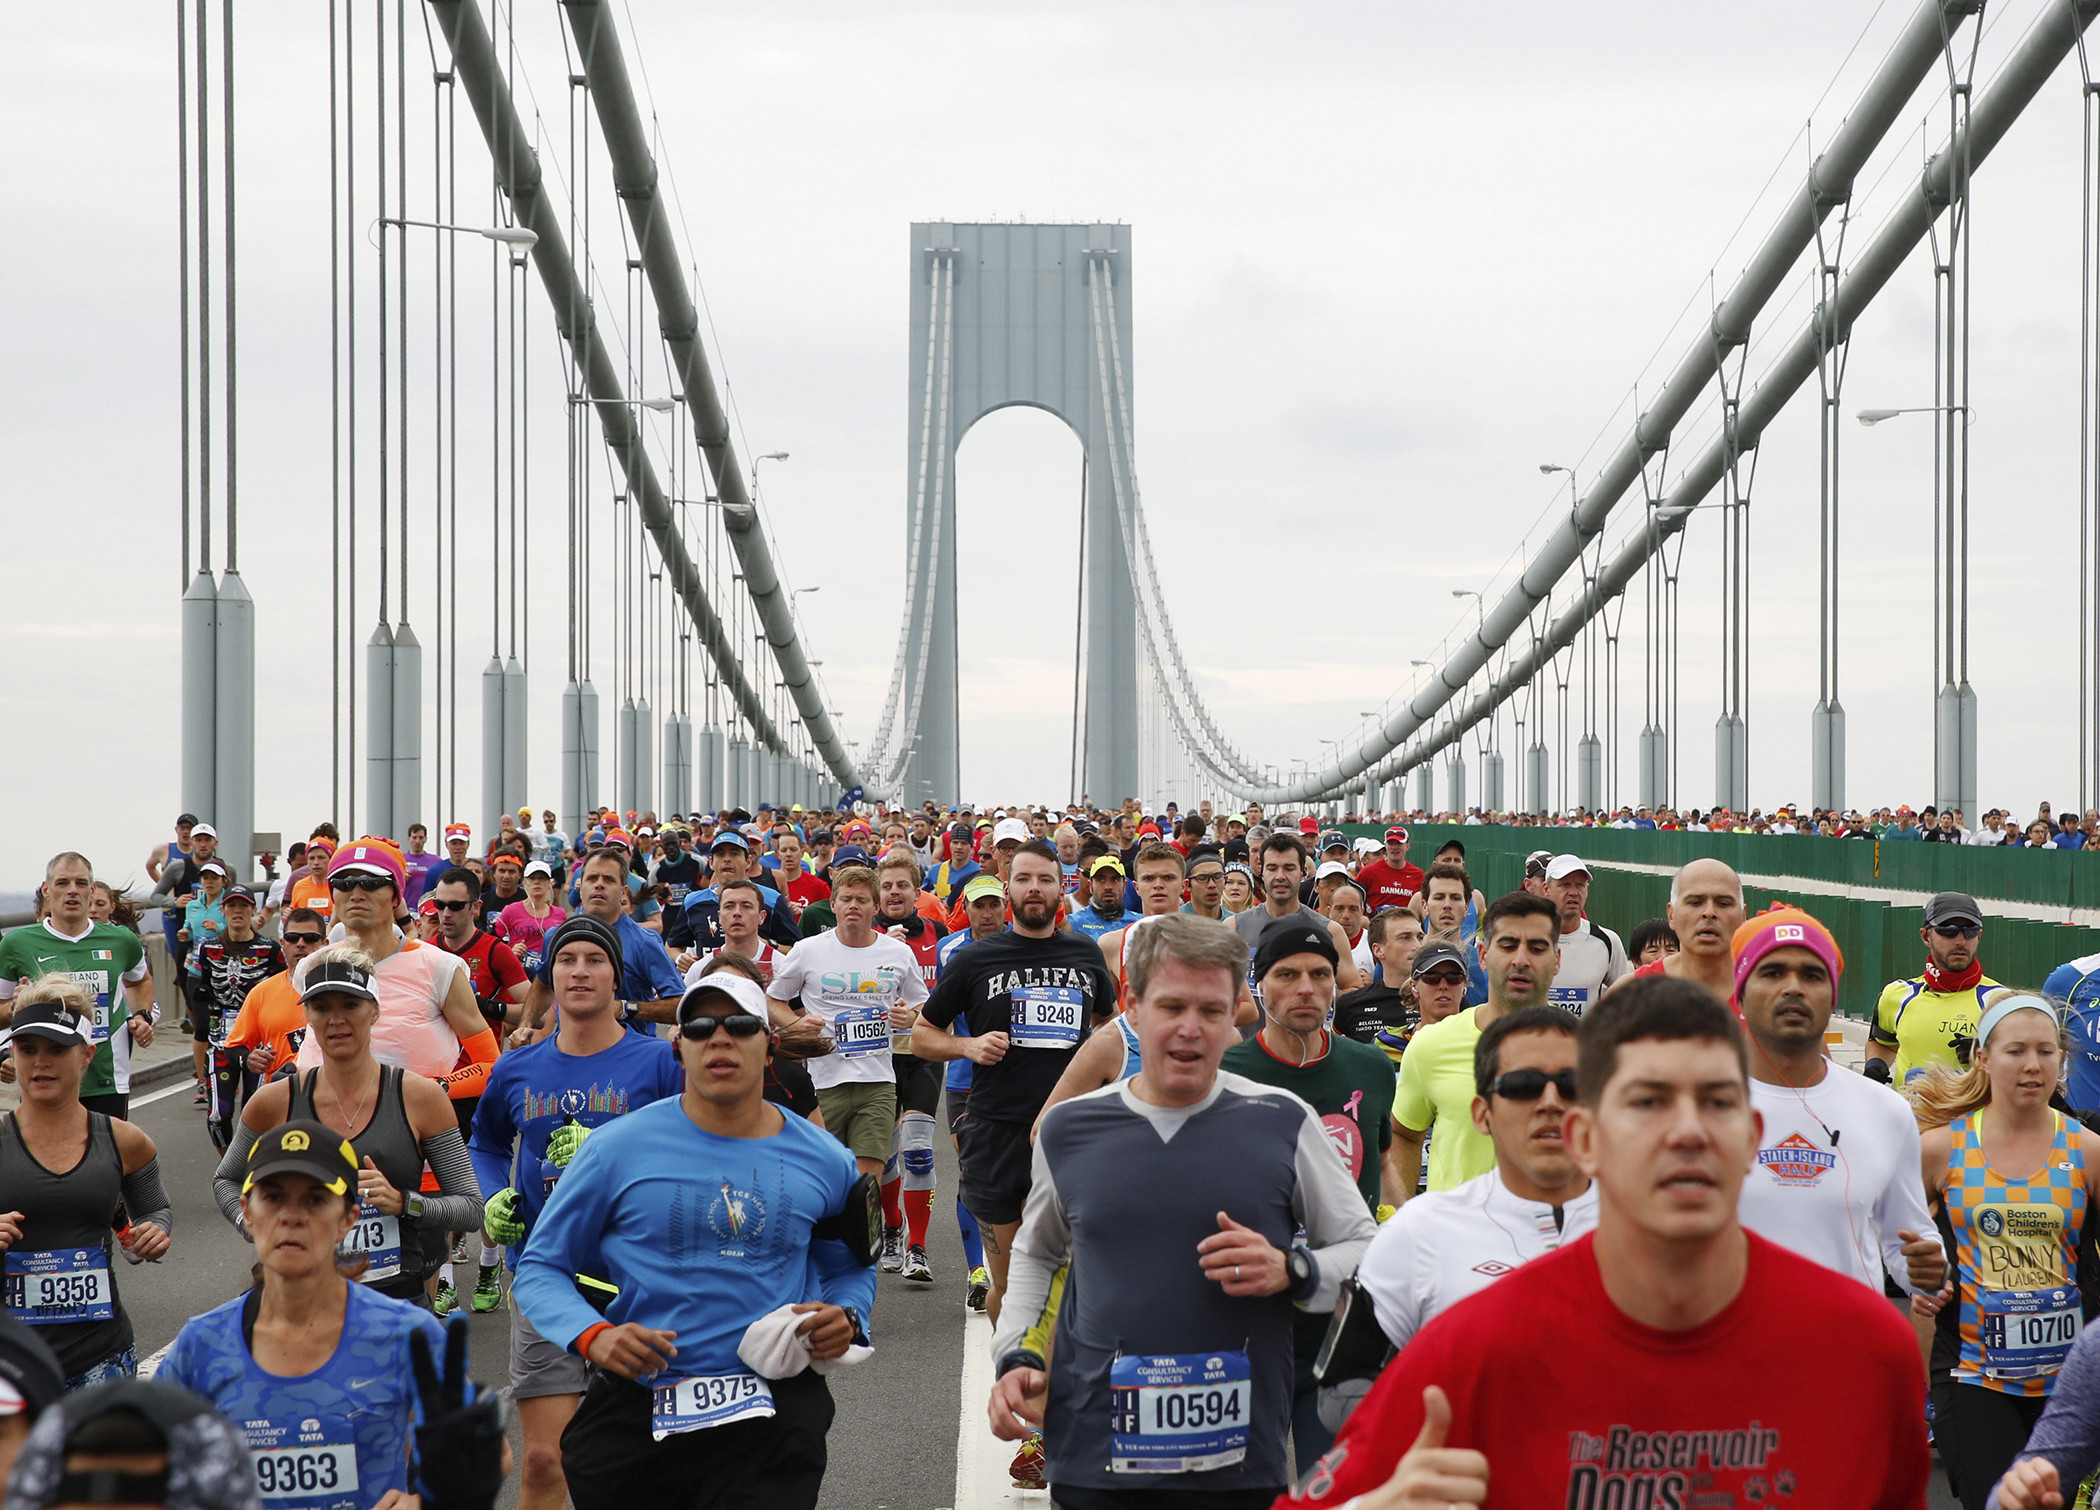 If you can't actually be in New York for the Marathon you can run the world's largest marathon through their Virtual program